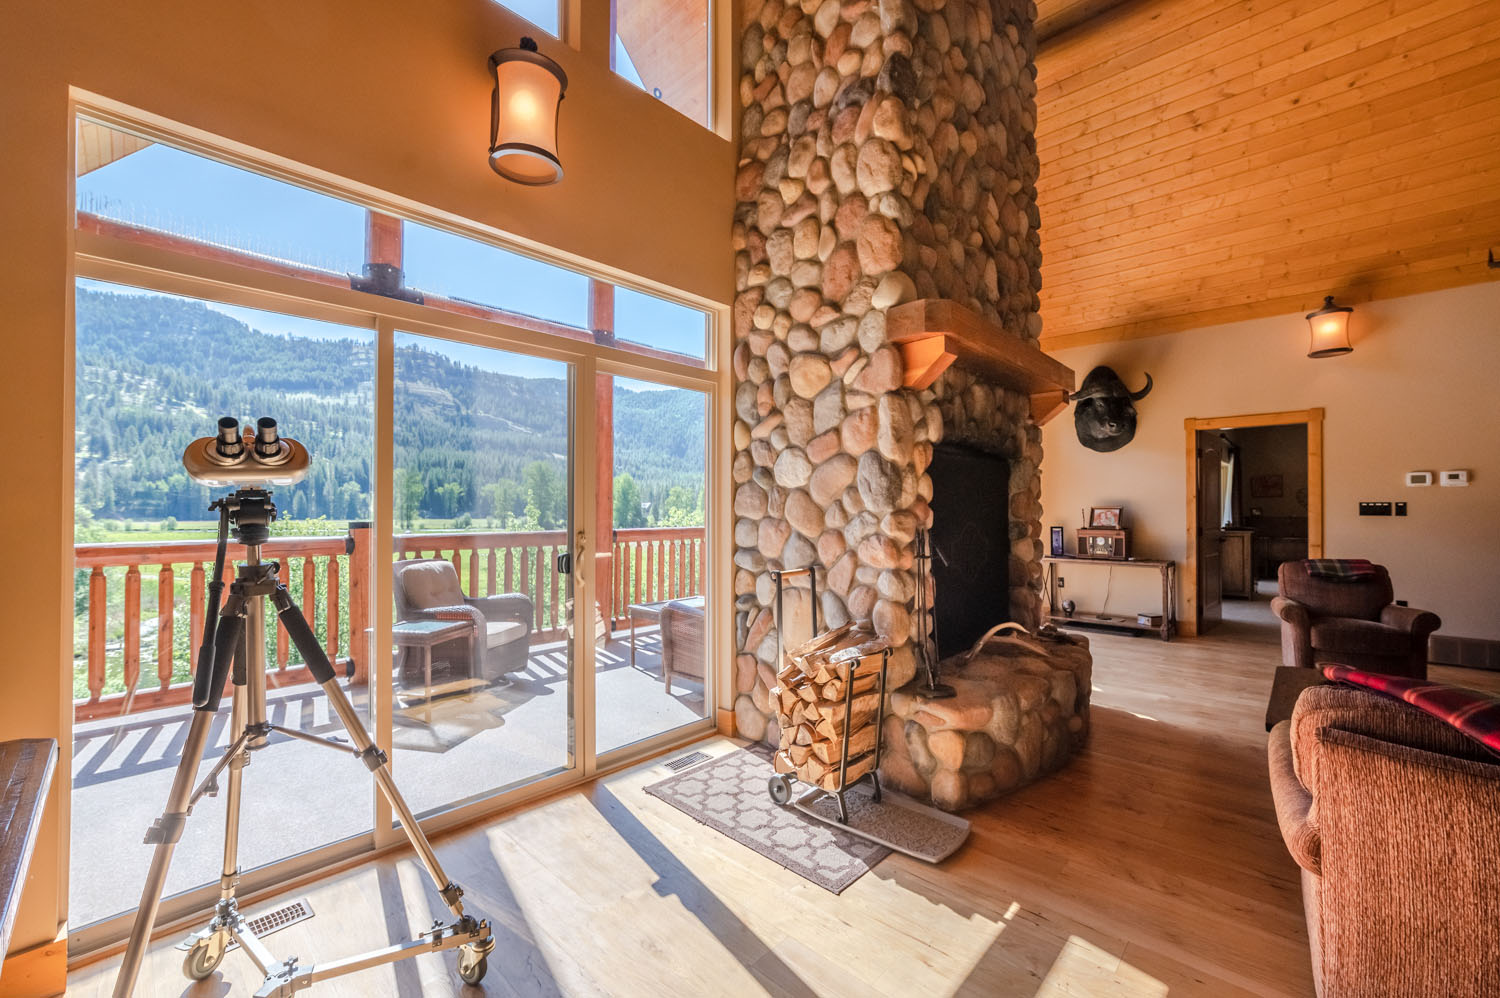 Willow springs ranch 25